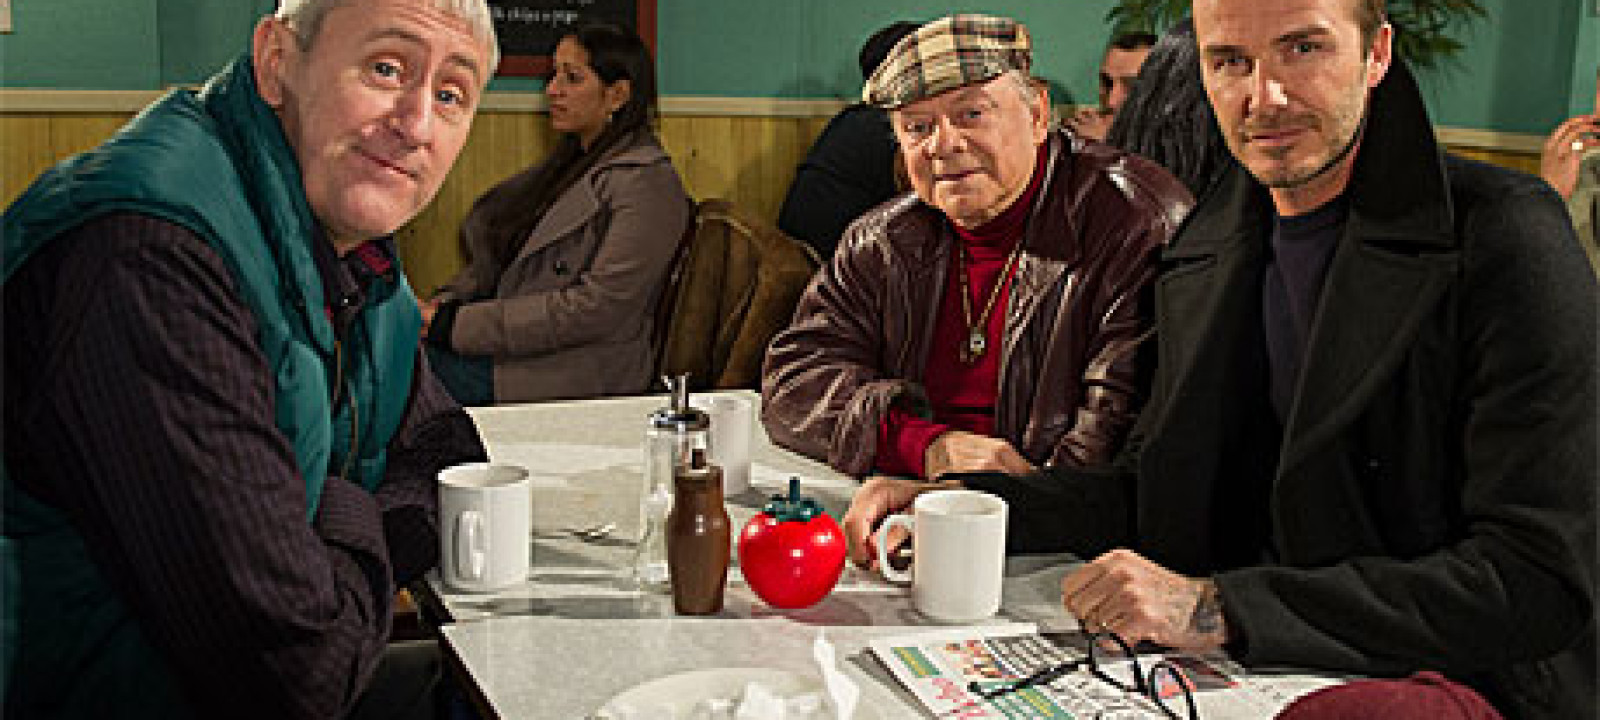 David Beckham in Only Fools And Horses